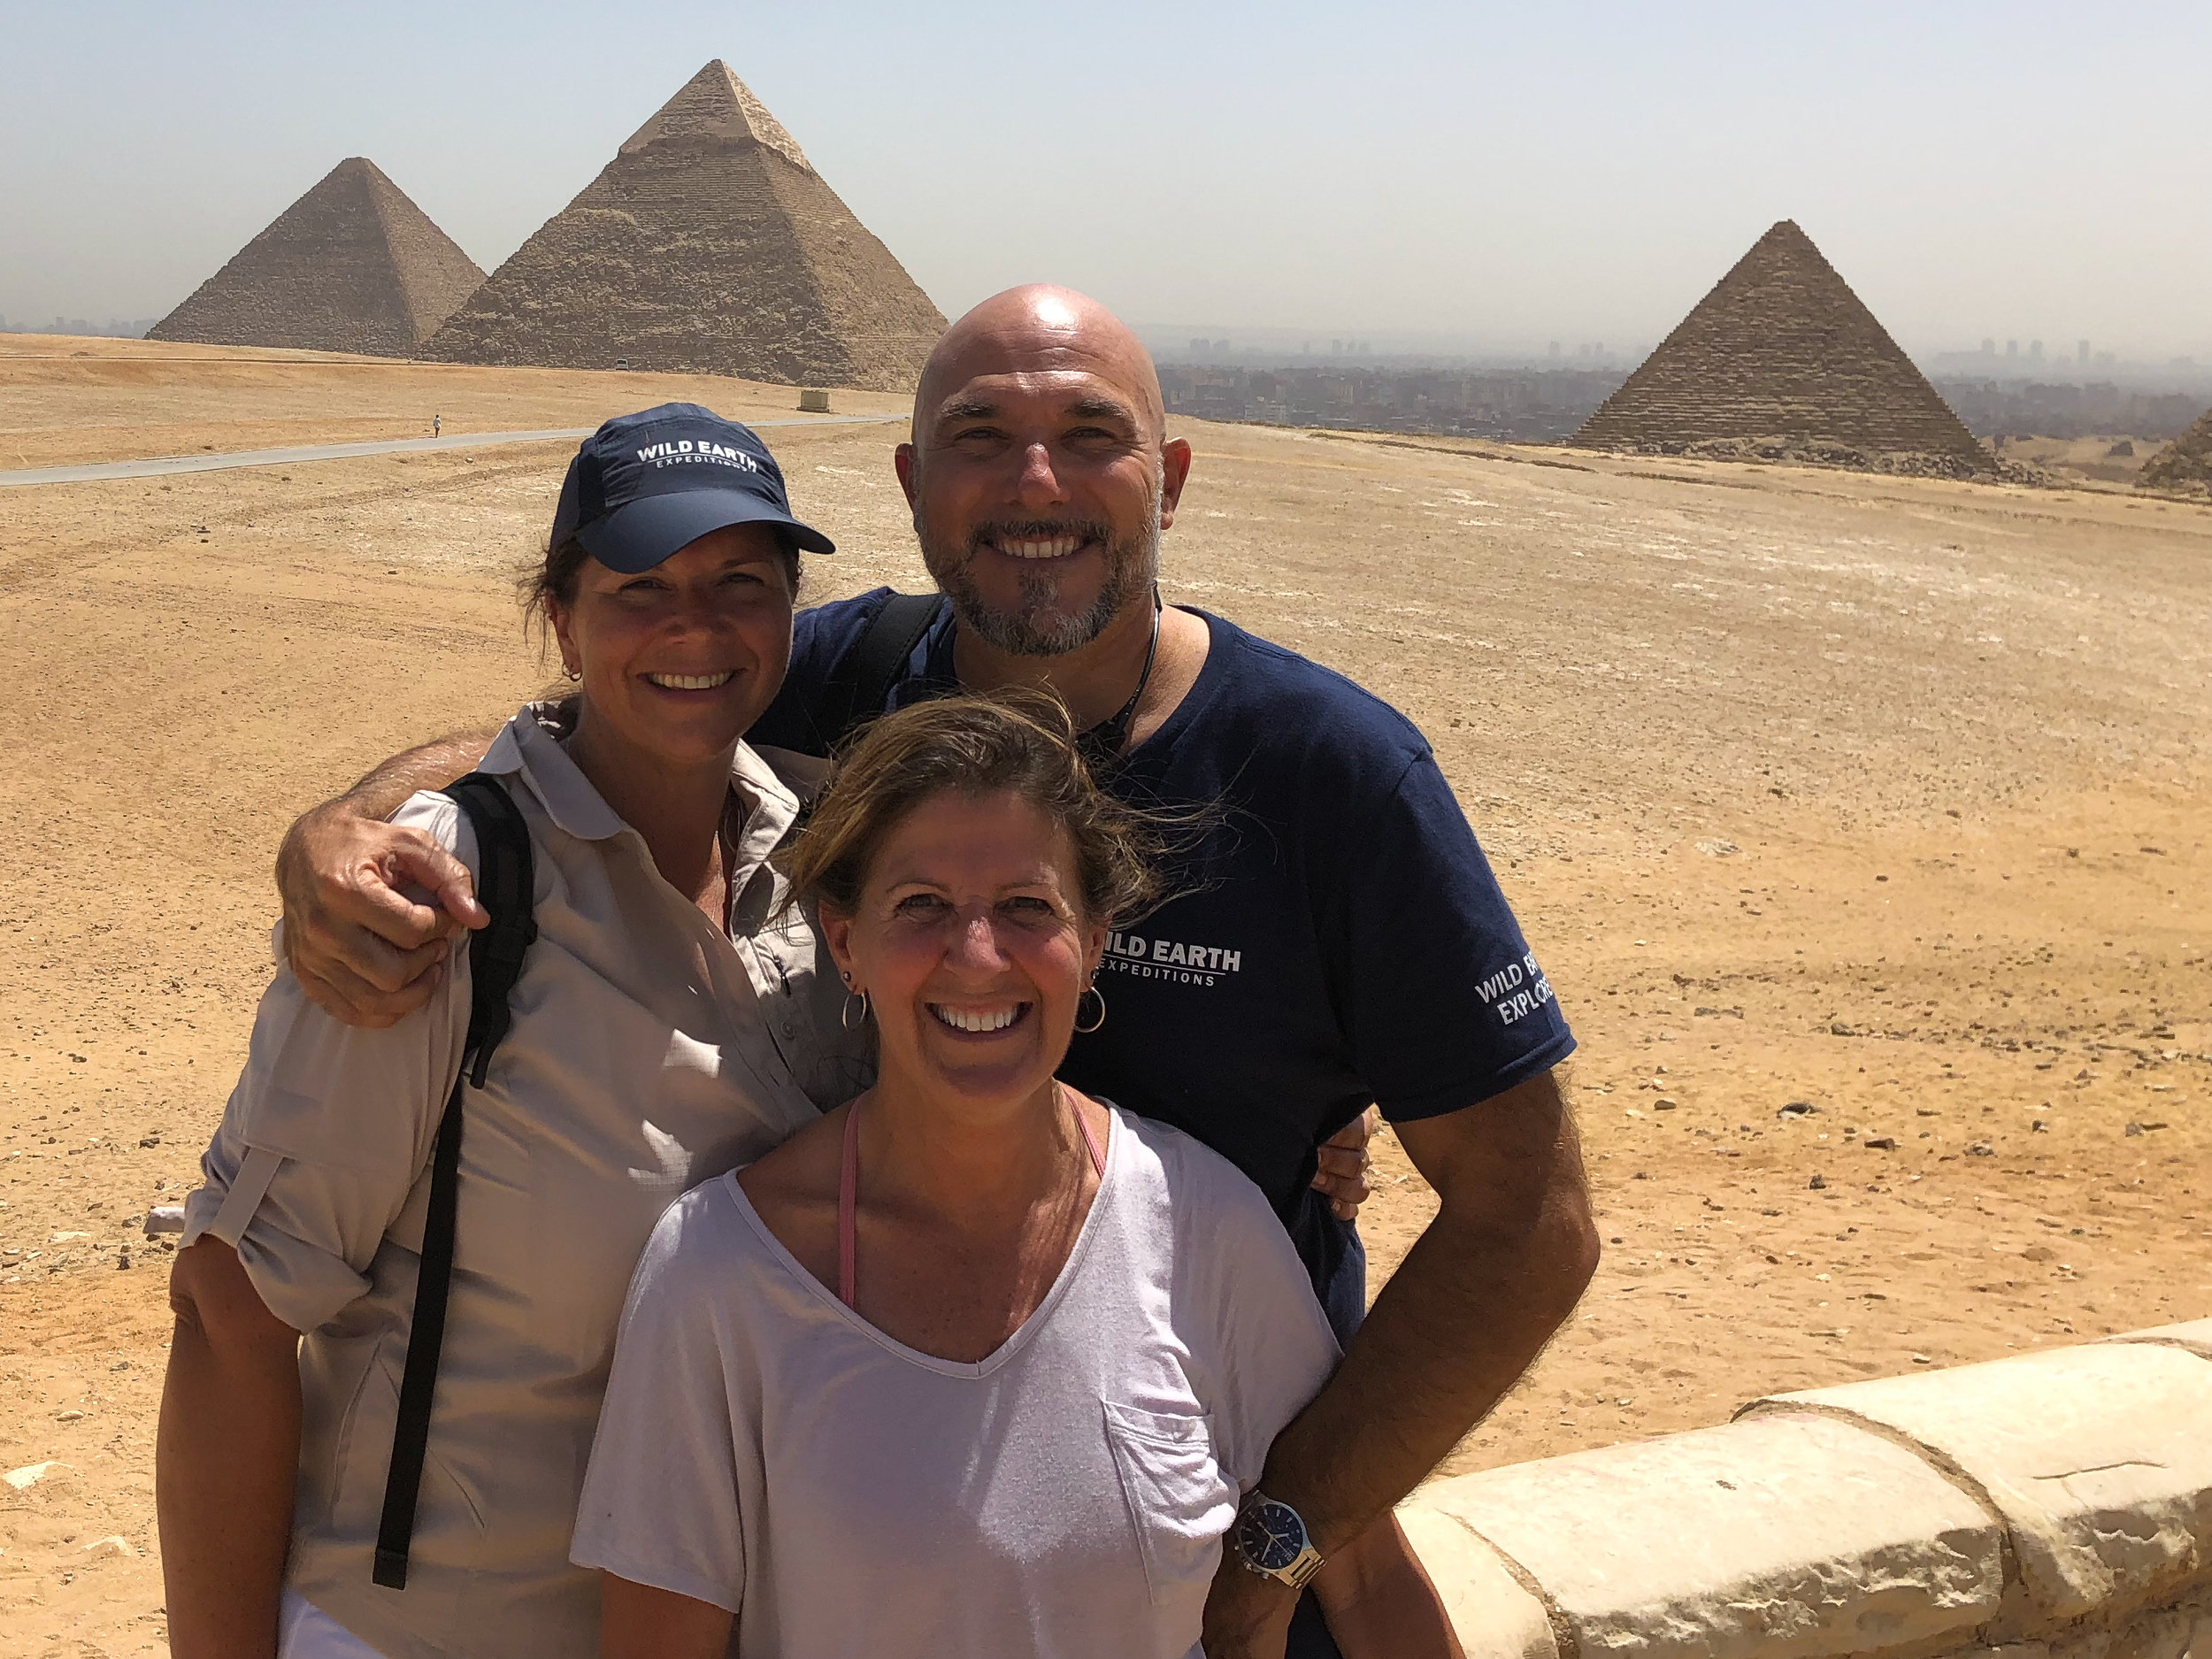 Wild Earth Team at the Pyramids, Cairo - Egypt - Wild Earth Expeditions